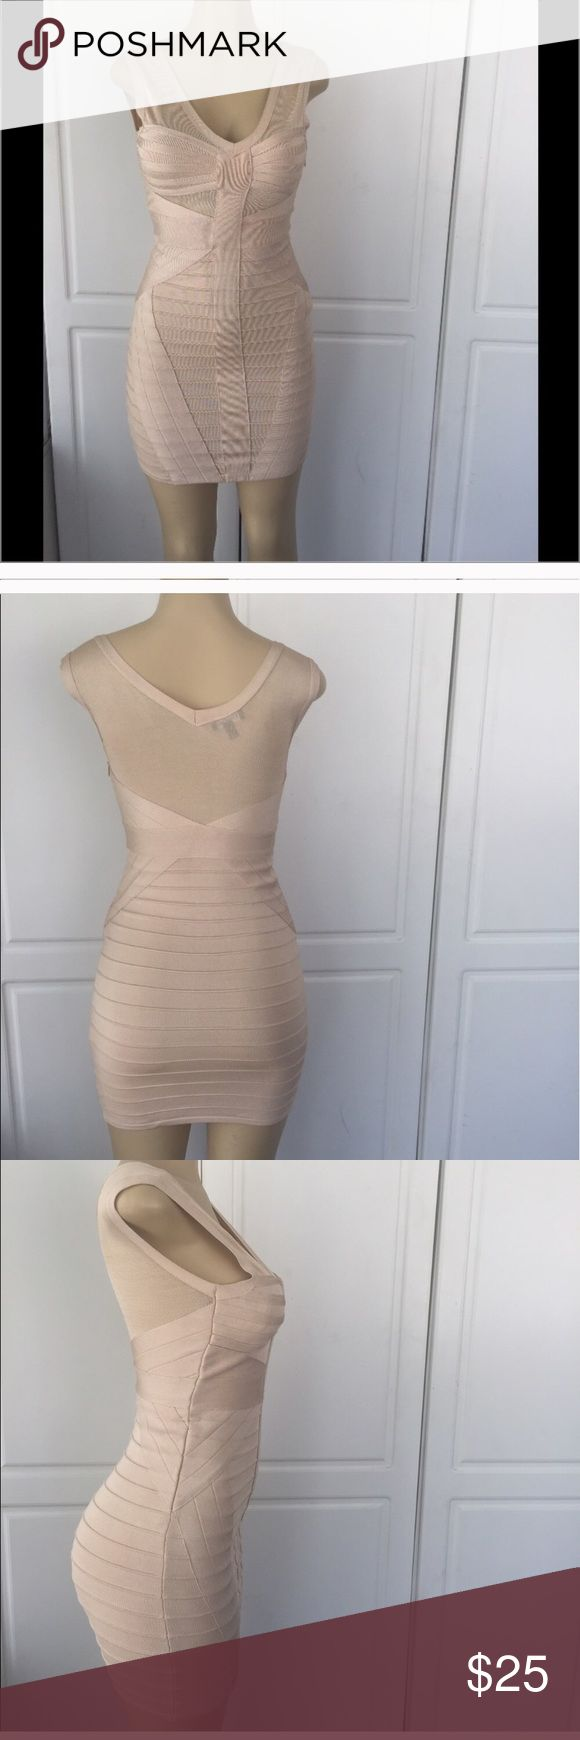 Bebe BANDAGE dress Nude dress, form fitting, spect ion occasion dress. Worn once , great condition. bebe Dresses Mini